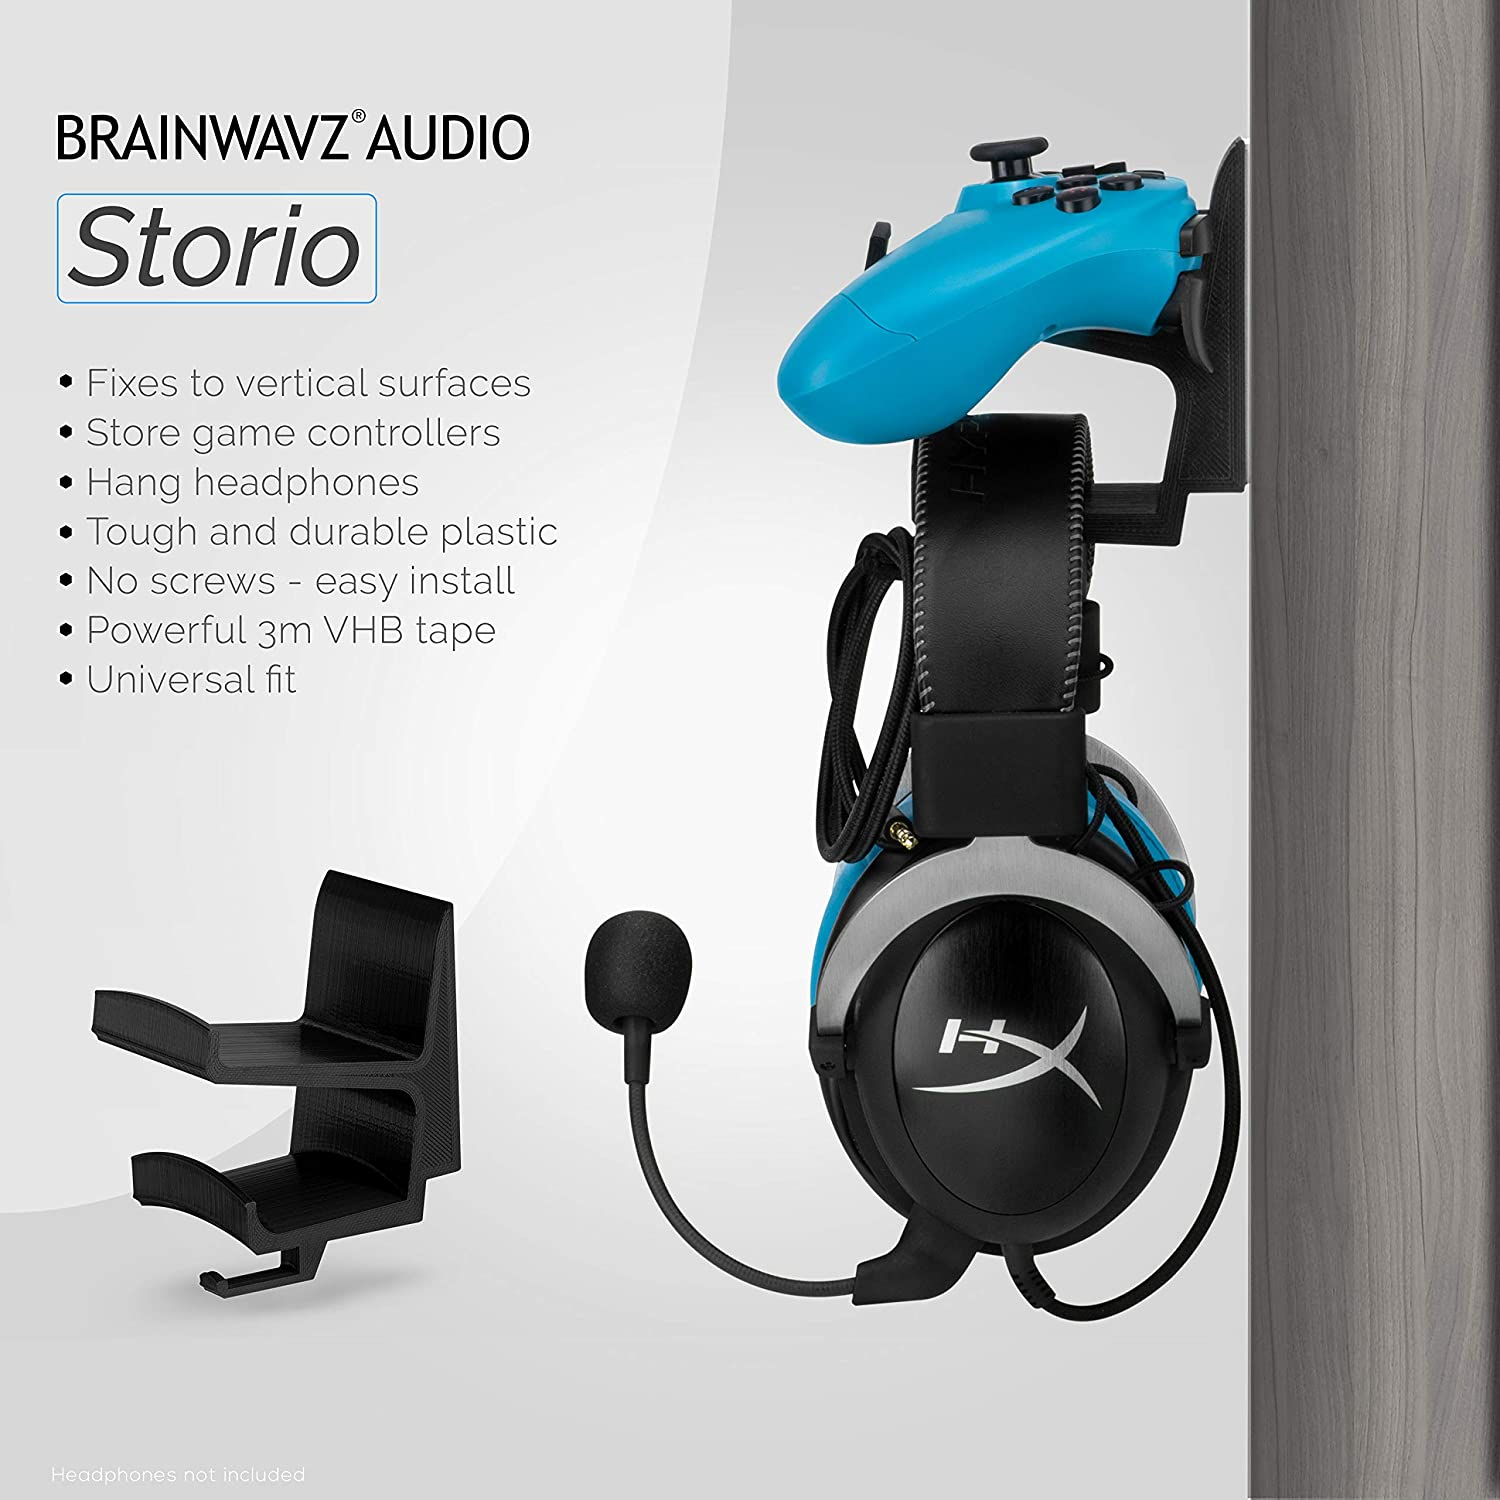 Gamepad Controller /& Headphone Hanger Holder Stand Steelseries Steam /& More Black by Brainwavz PS5 PC Dualshock Designed for Xbox ONE Switch PS3 PS4 The STORIO